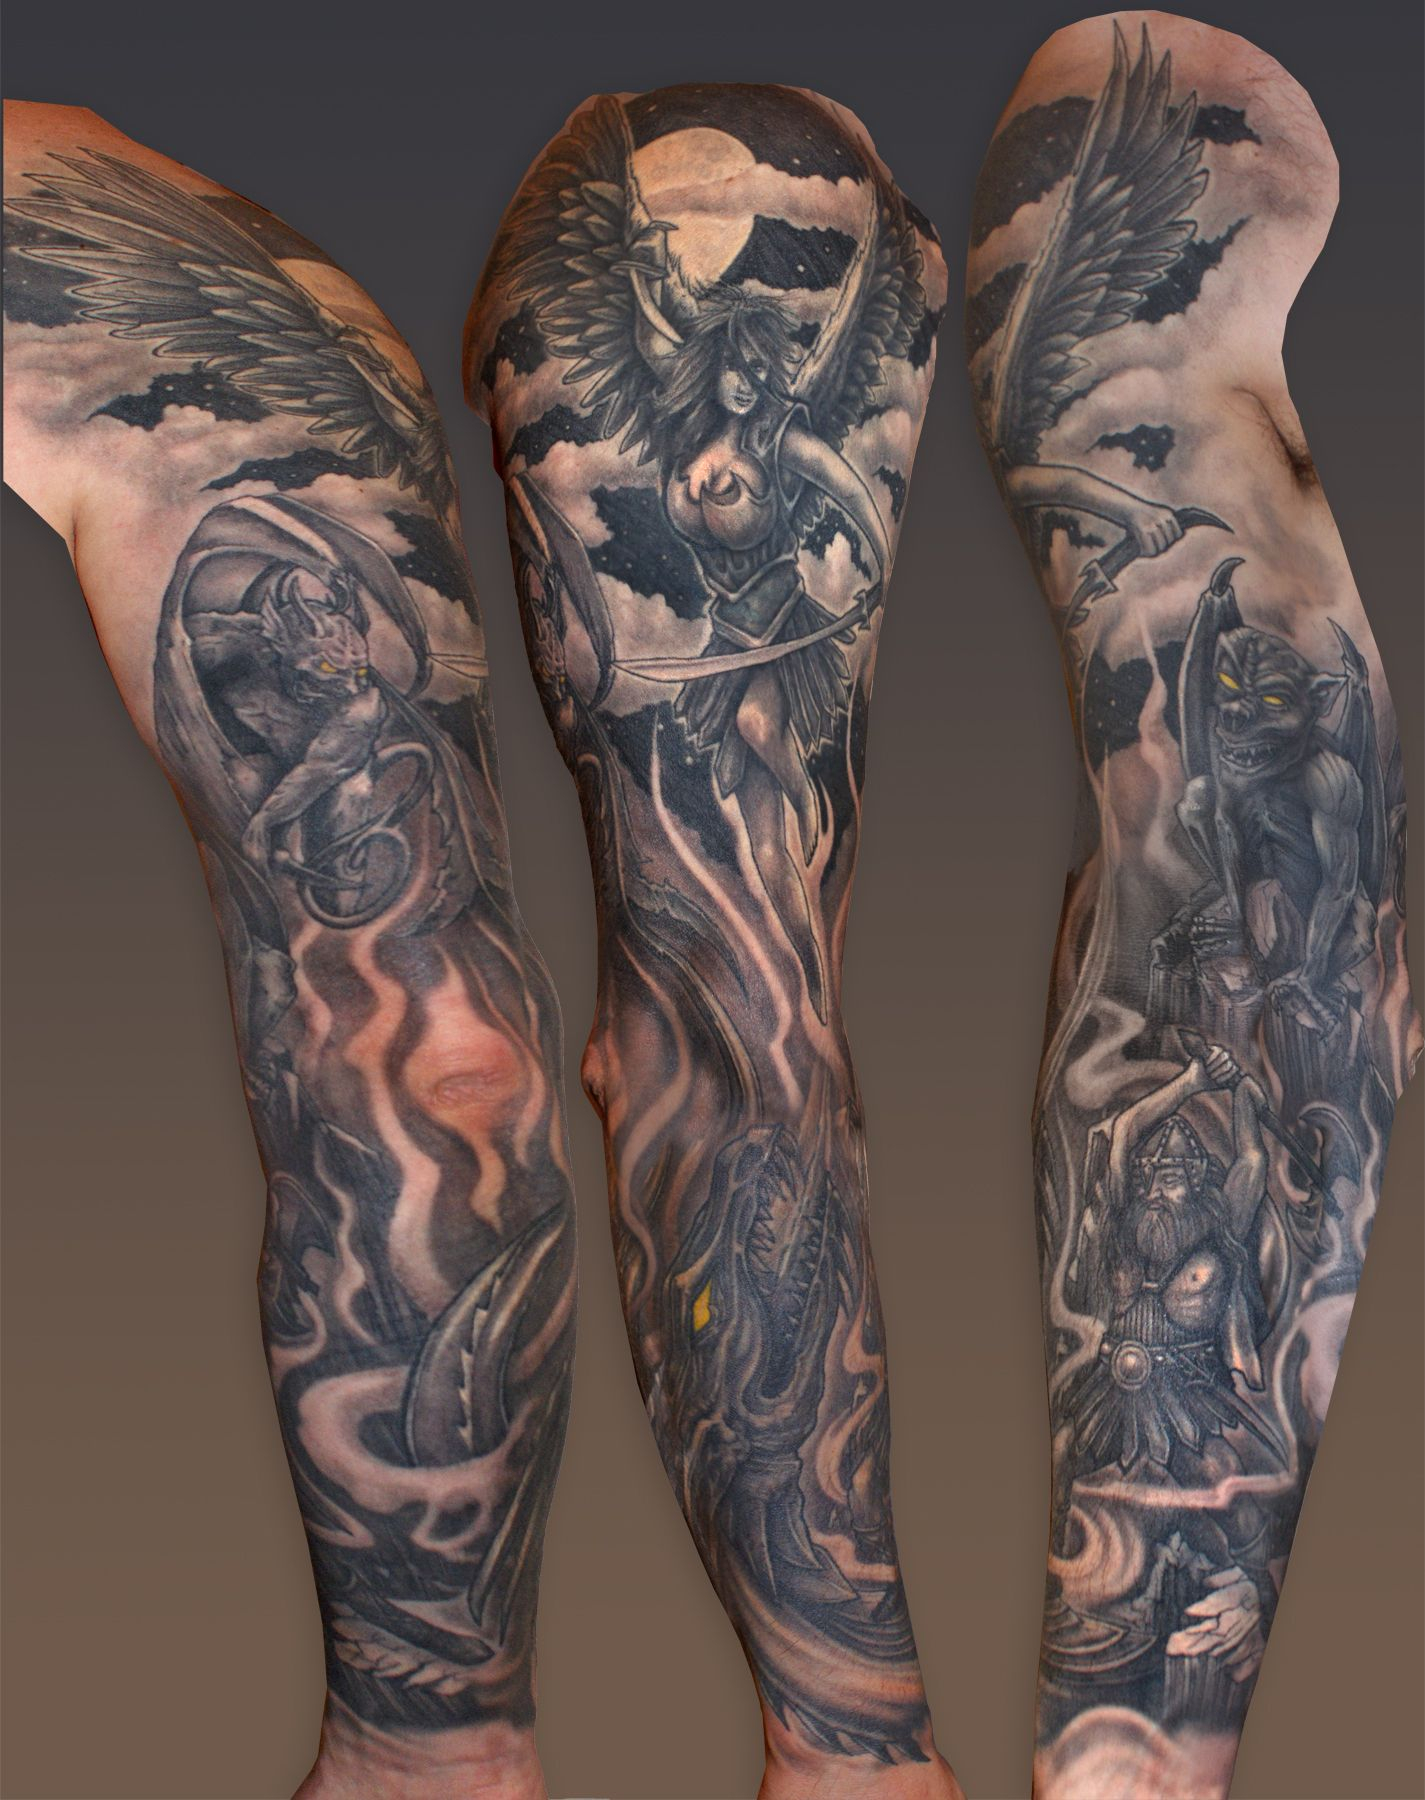 Kptallat A Kvetkezre Sleeve Tattoos Designs Heaven And Hell for measurements 1425 X 1800